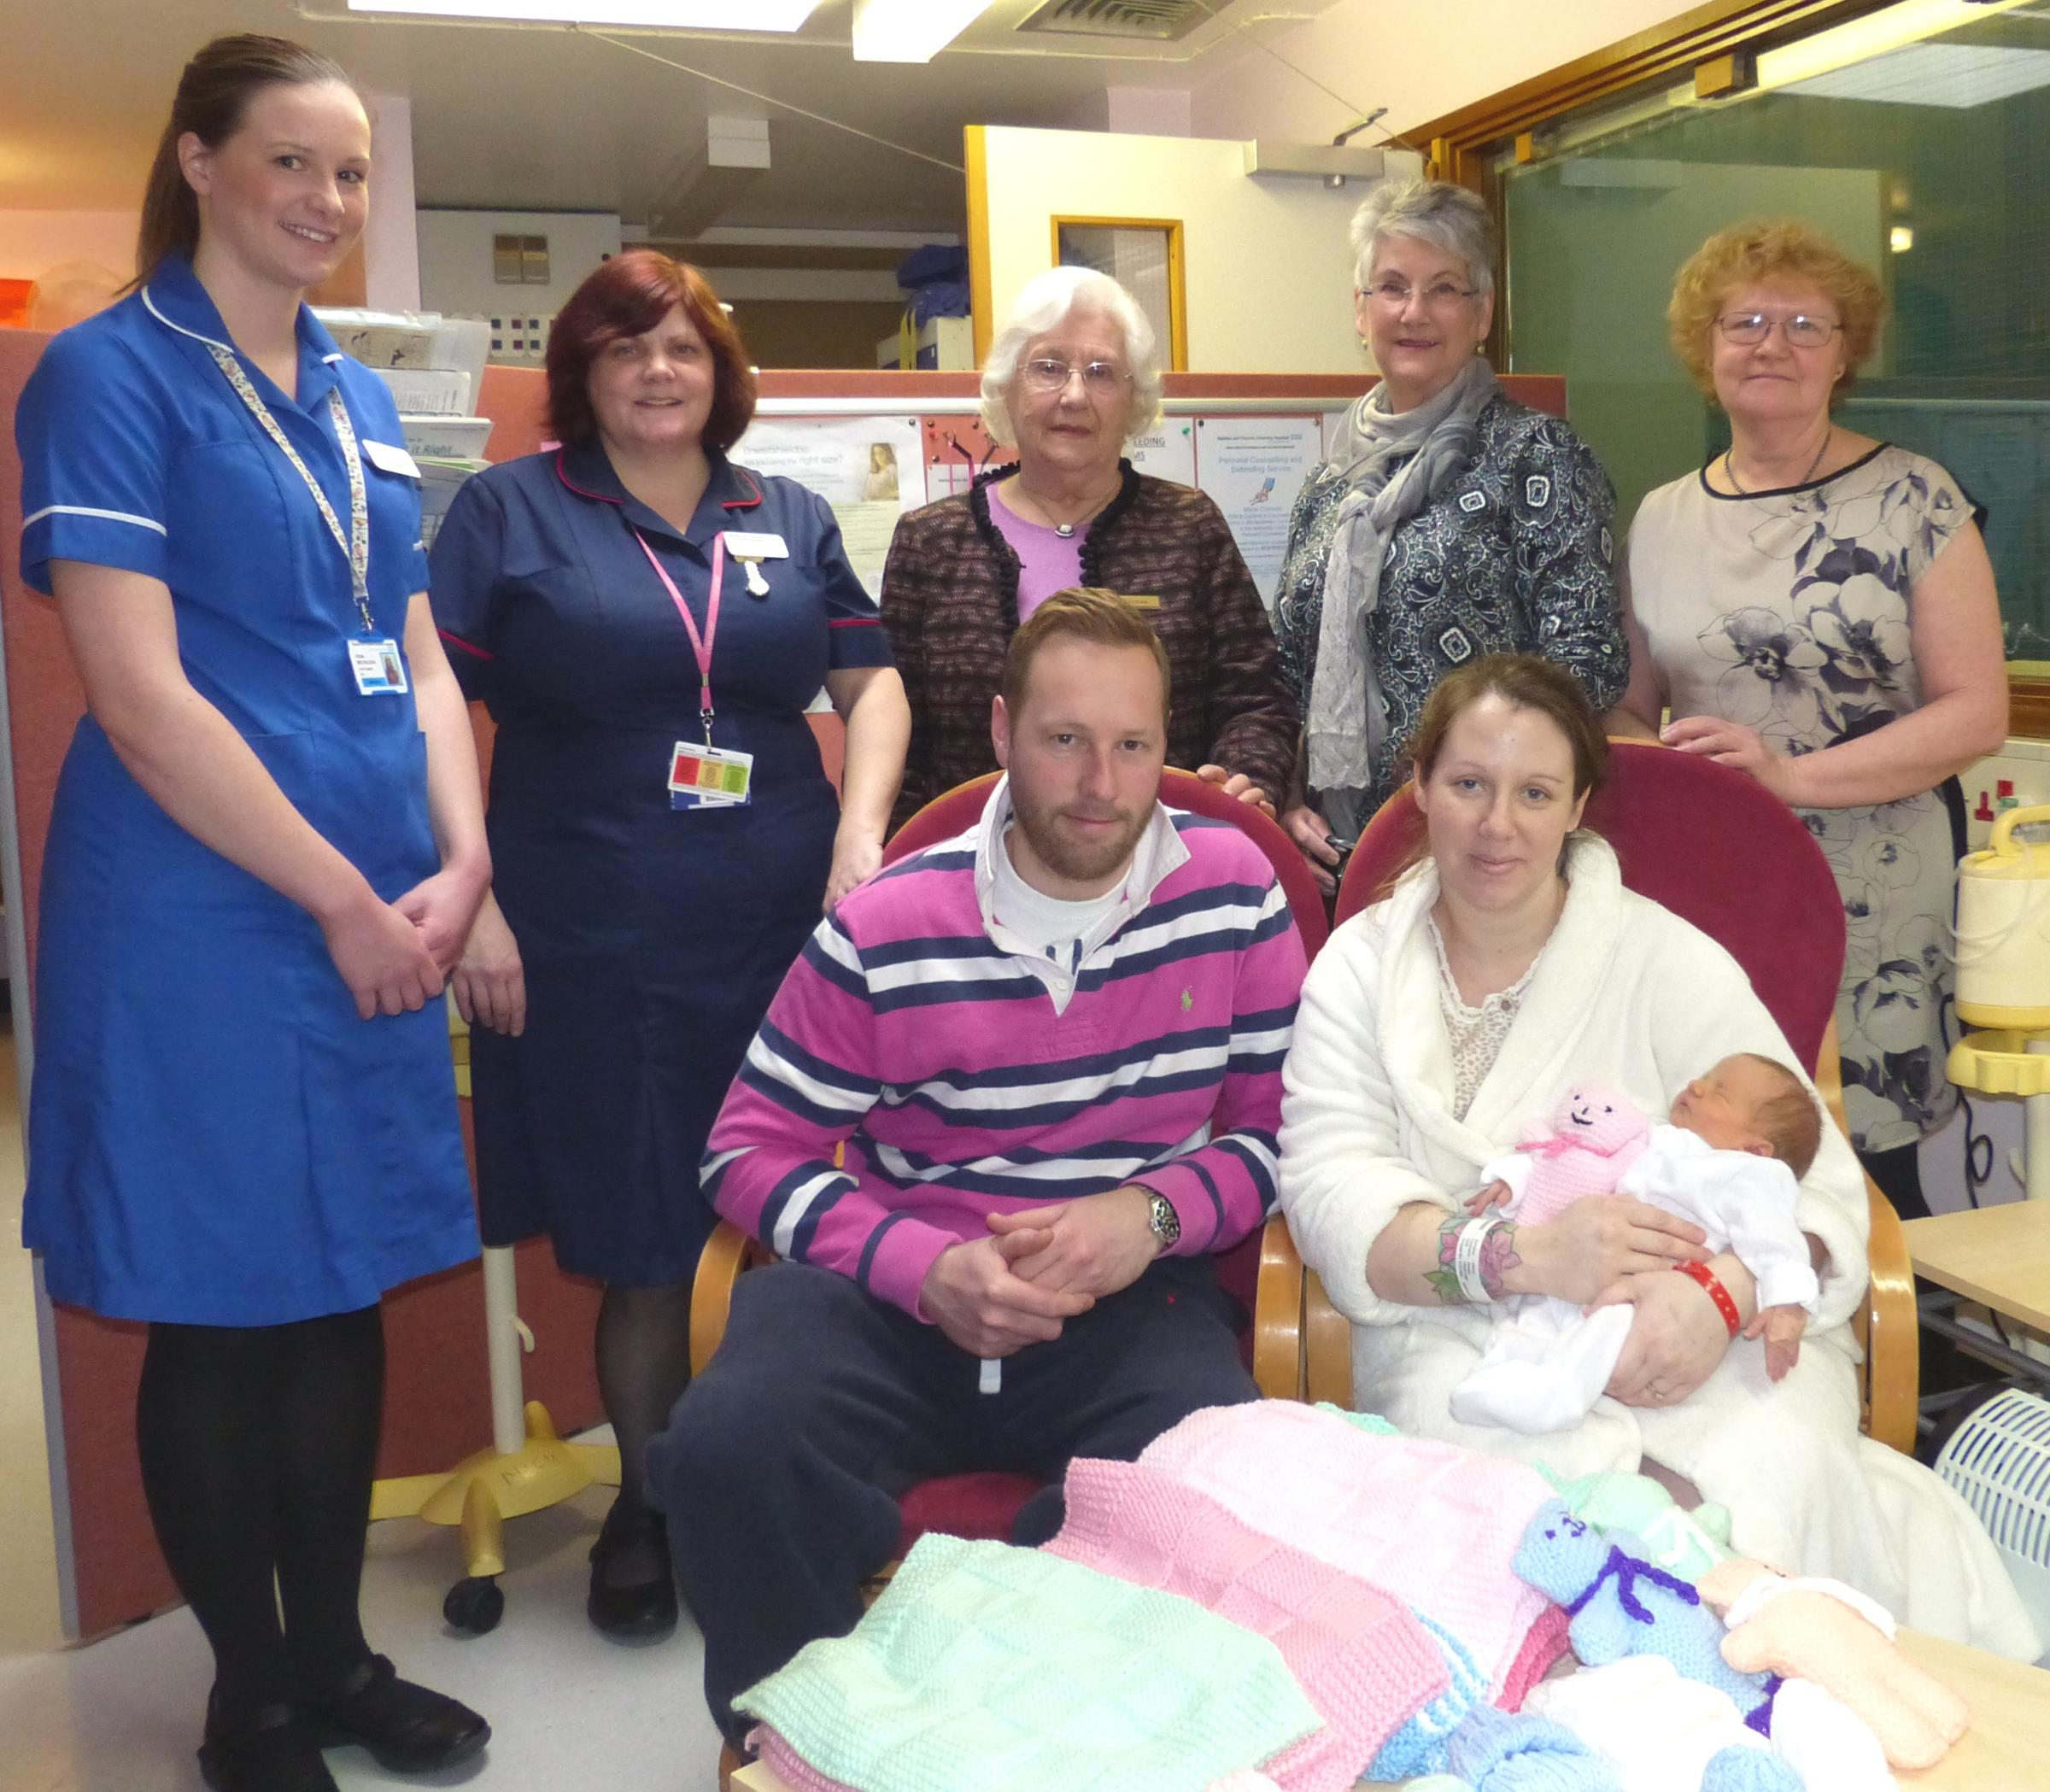 Baby love – staff nurse Fiona Nicholson, senior sister Wendy Rogers, guild chairman Sheila Poyner, Stephanie Thompson and fellow member Tricia Marshall, with Luke and Natalie Finch and Willow Rose